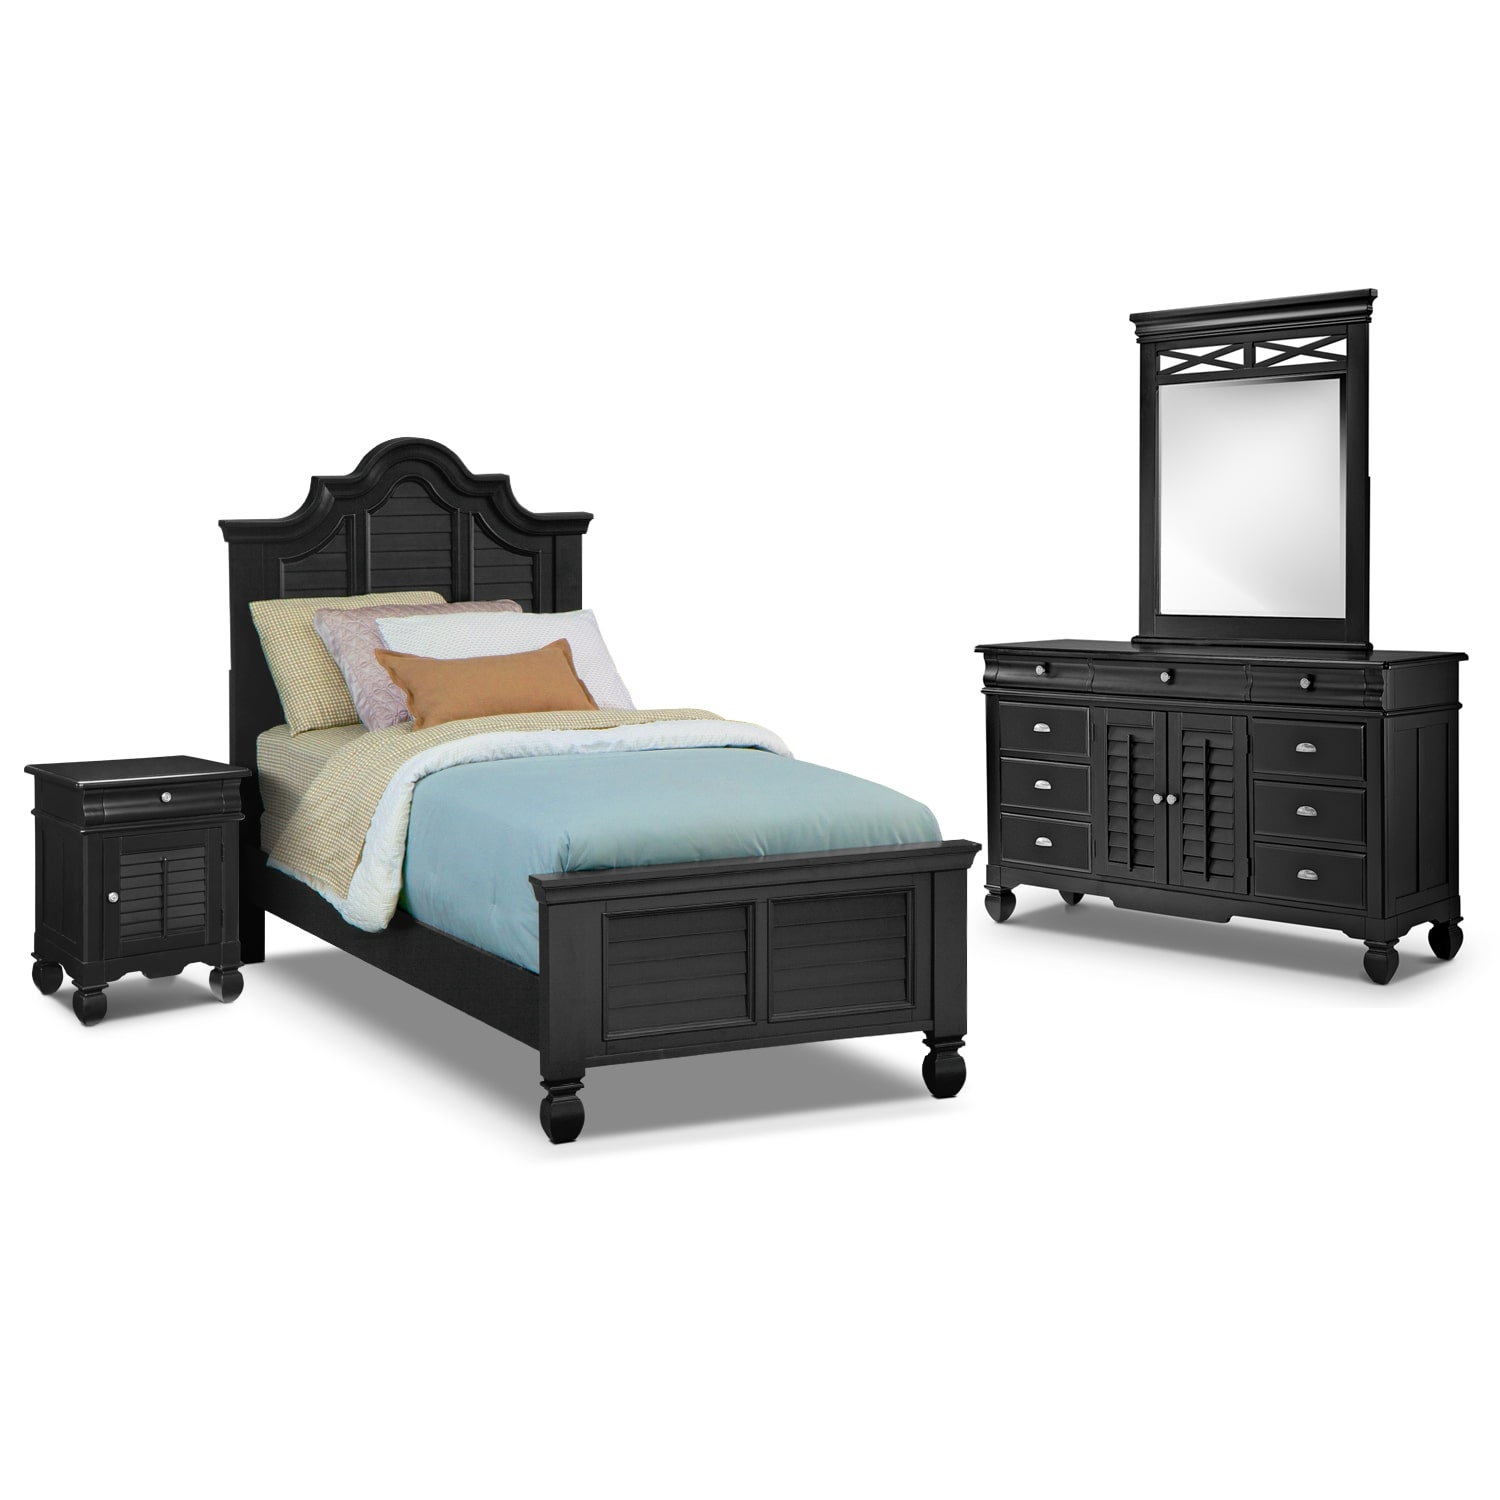 [Plantation Cove Black II 6 Pc. Twin Bedroom]